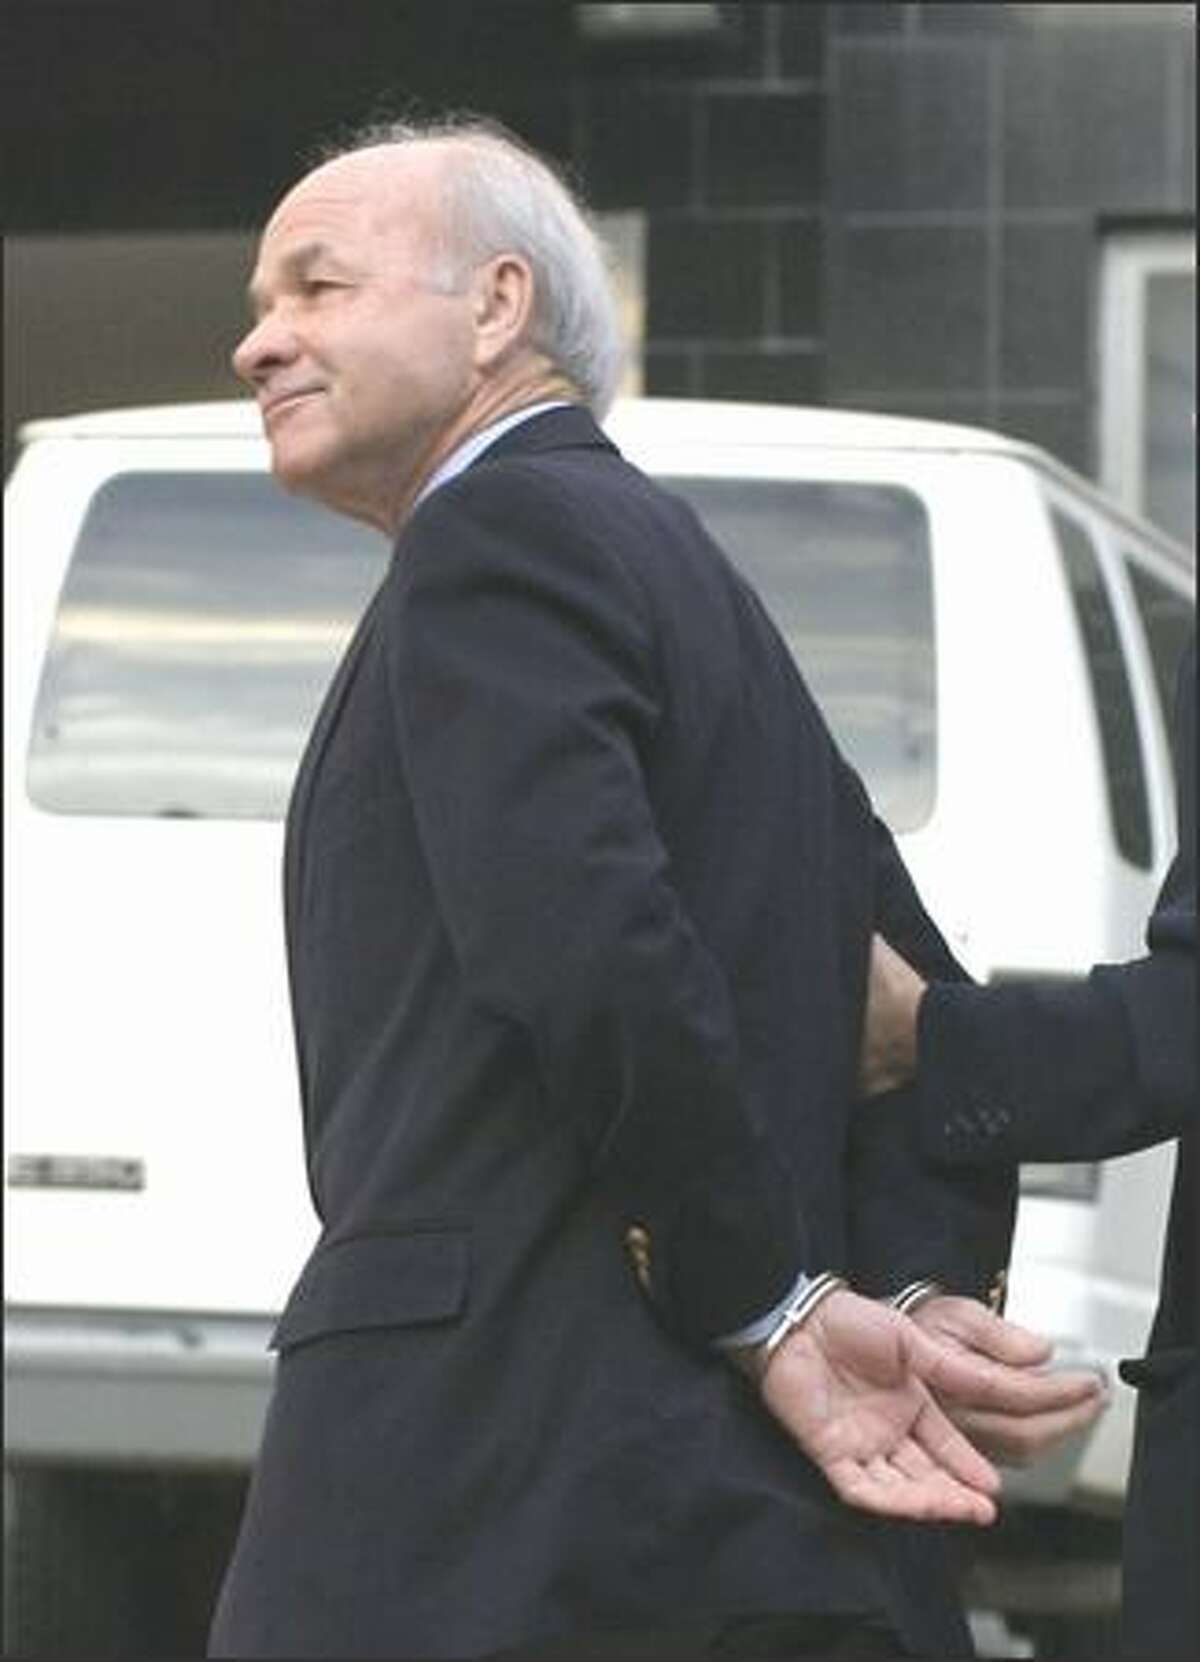 Former Enron Chief Executive Officer Kenneth Lay is led into federal court in Houston yesterday.